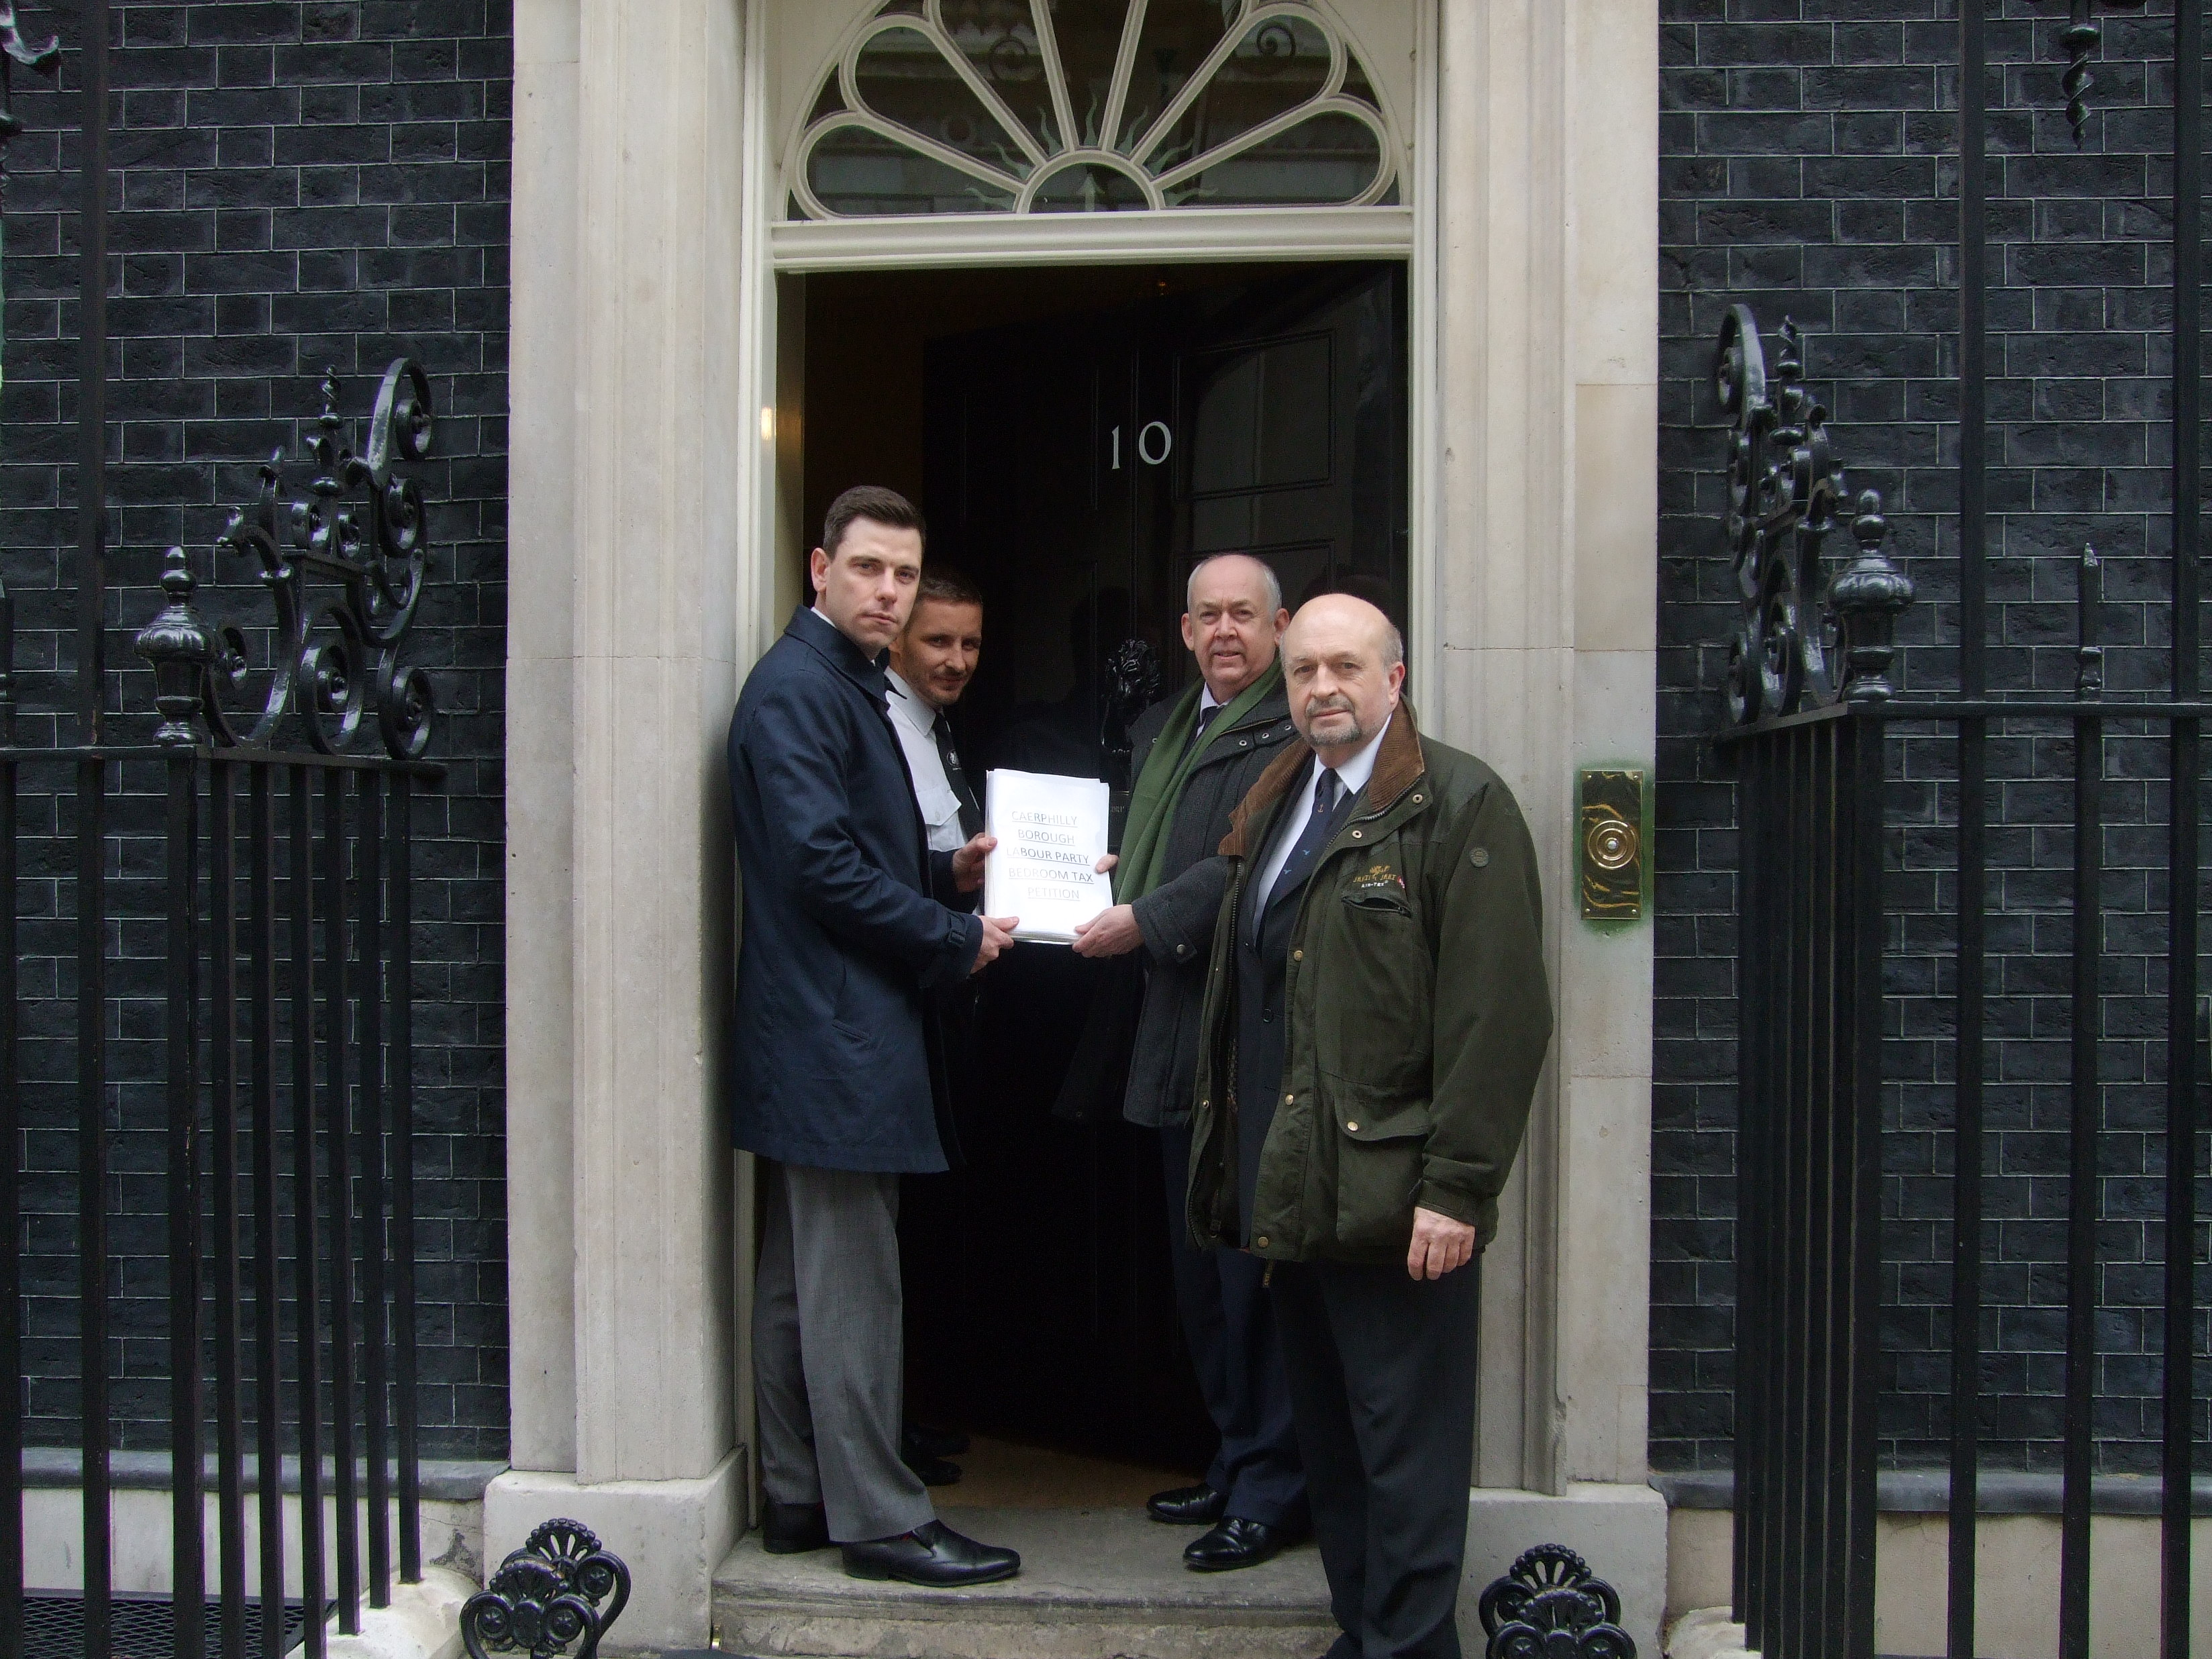 Bedroom Tax petition